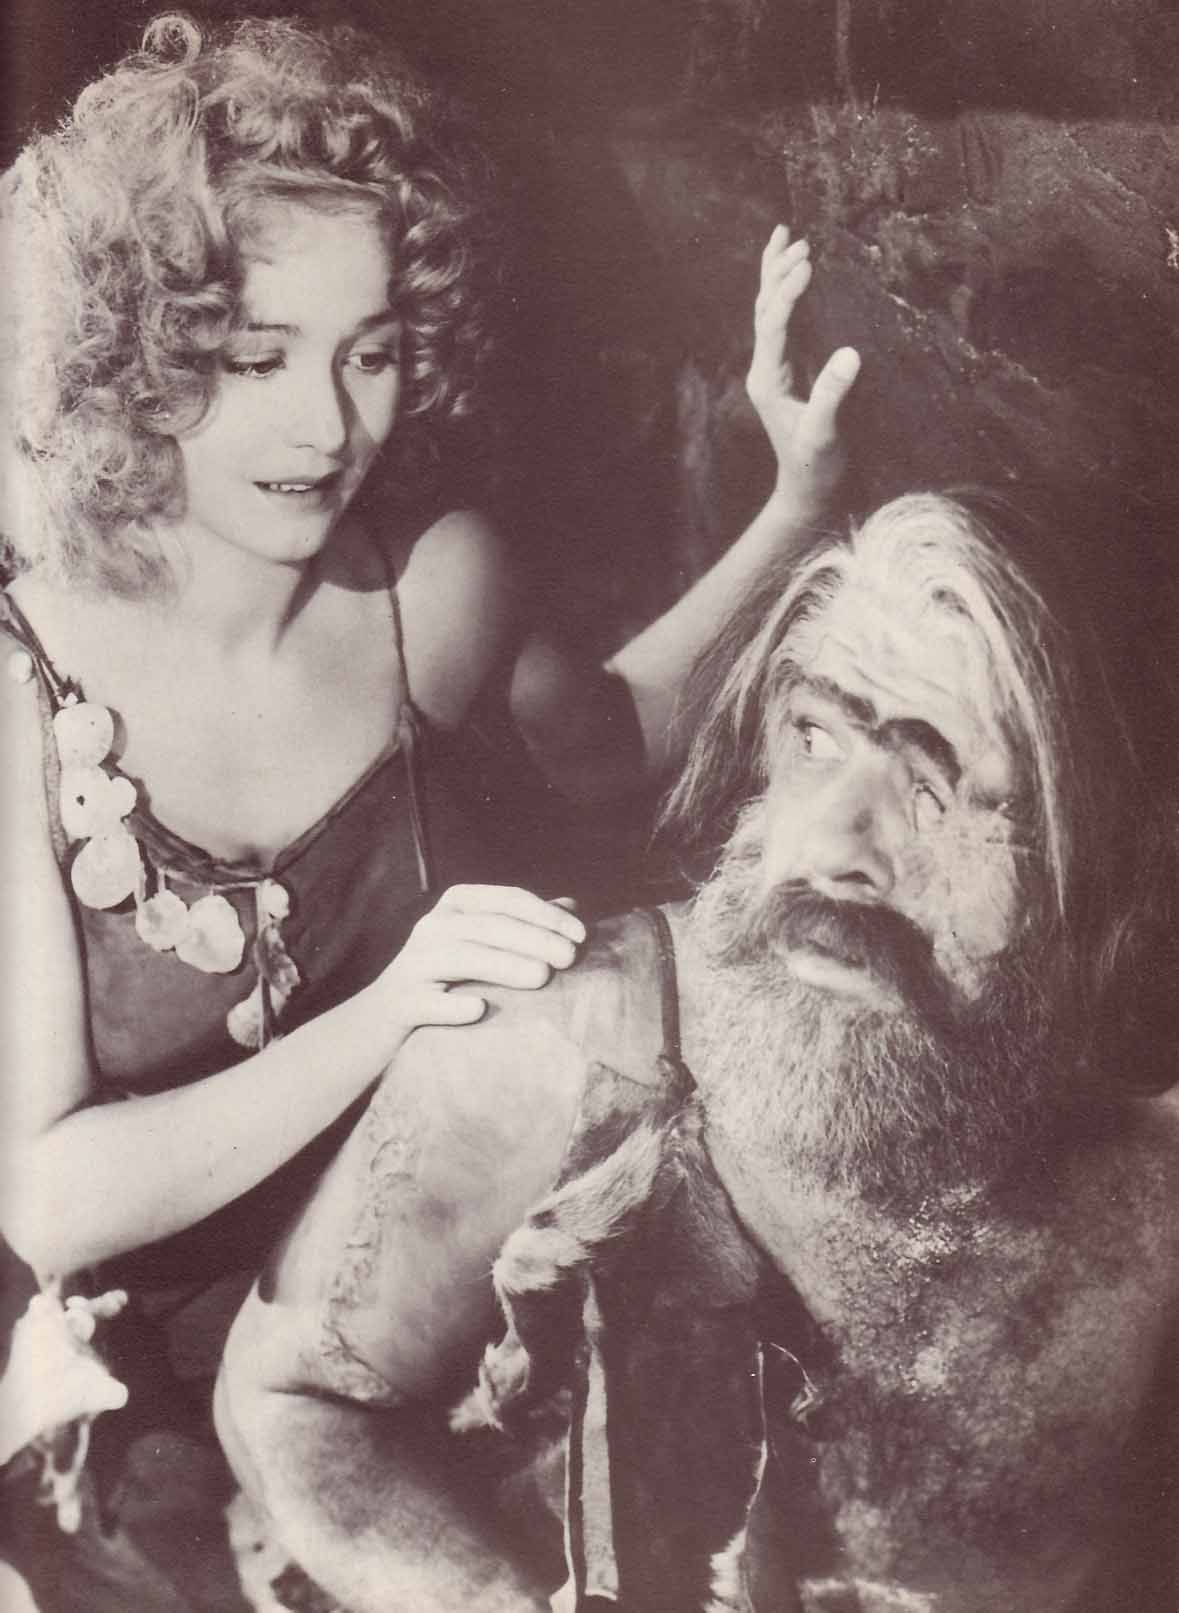 Carol Landis and Lon Chaney, Jr. in ONE MILLION B.C.